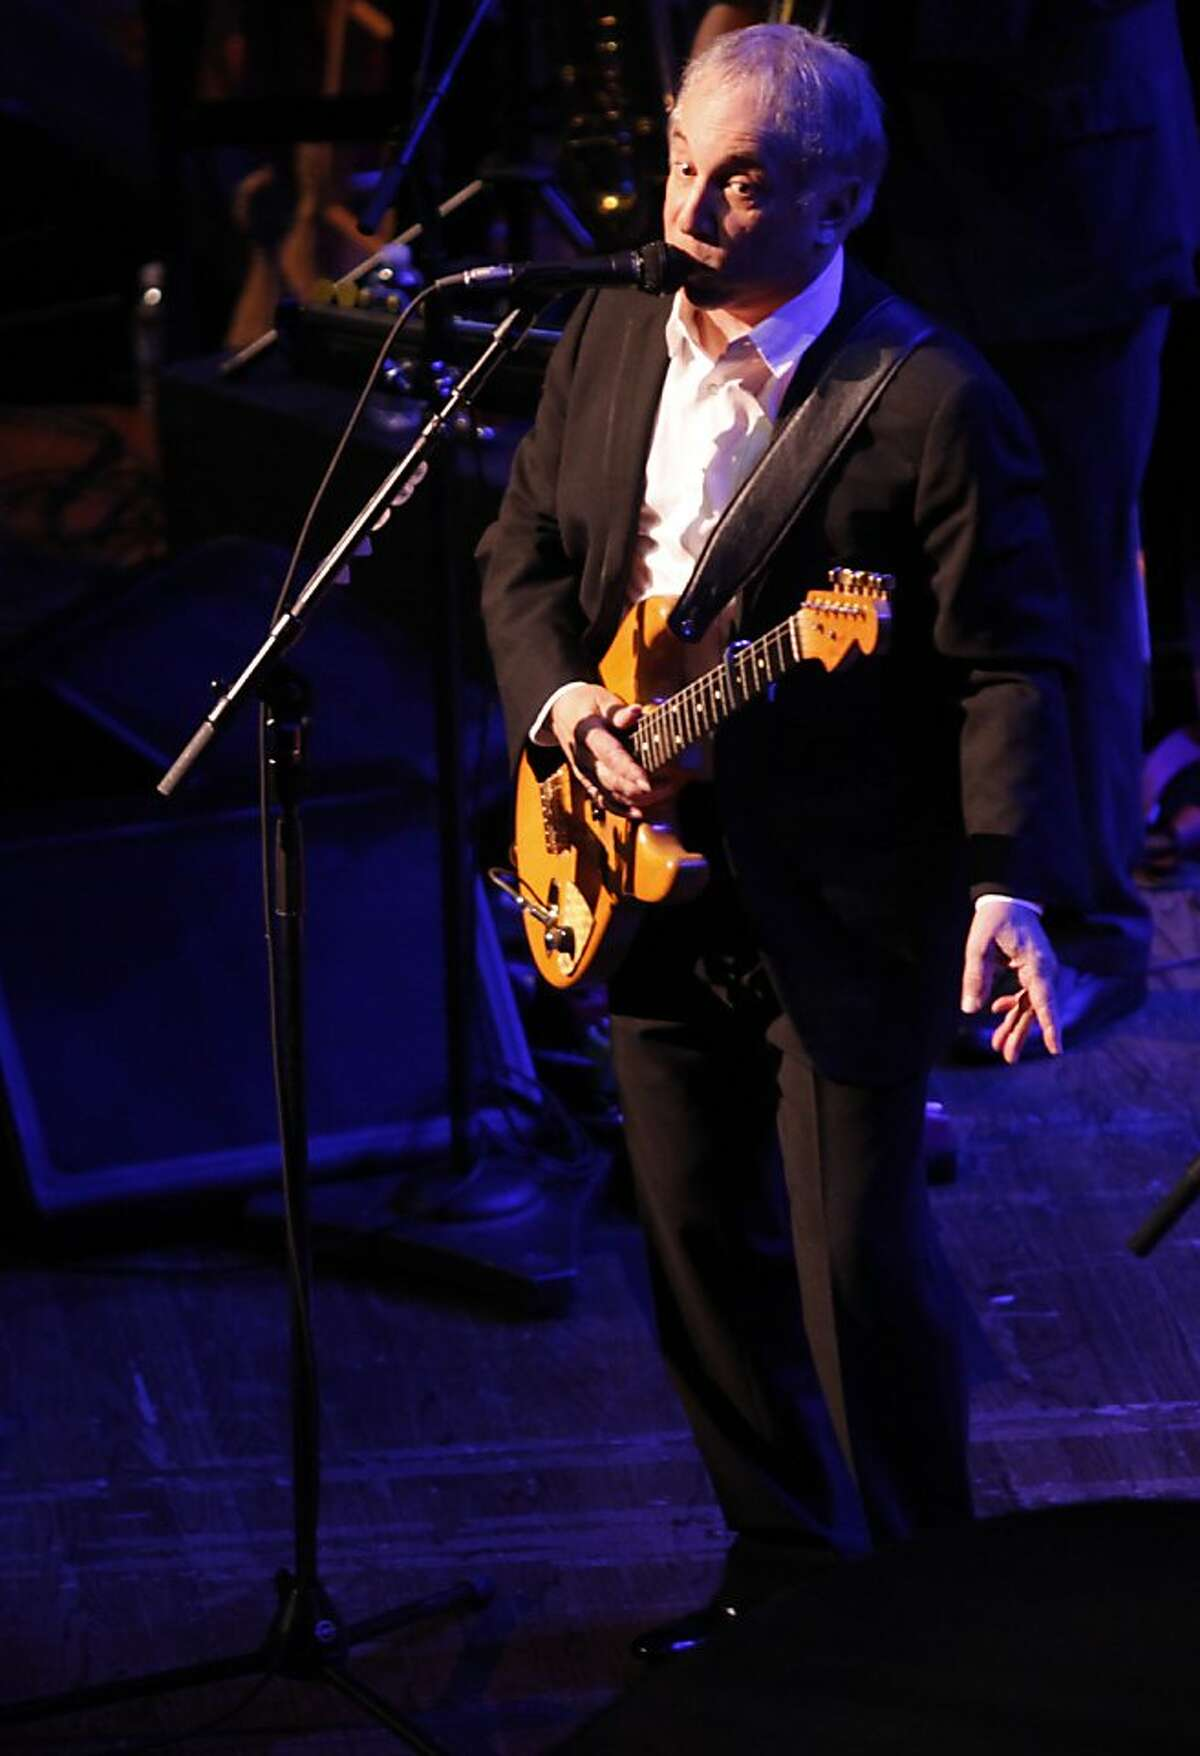 Paul Simon sings 'Diamonds on the soles of her shoes' to a crowd at the Black and White Ball celebrating the 100th Anniversary of the San Francisco Symphony on Saturday, June 2, 2012.